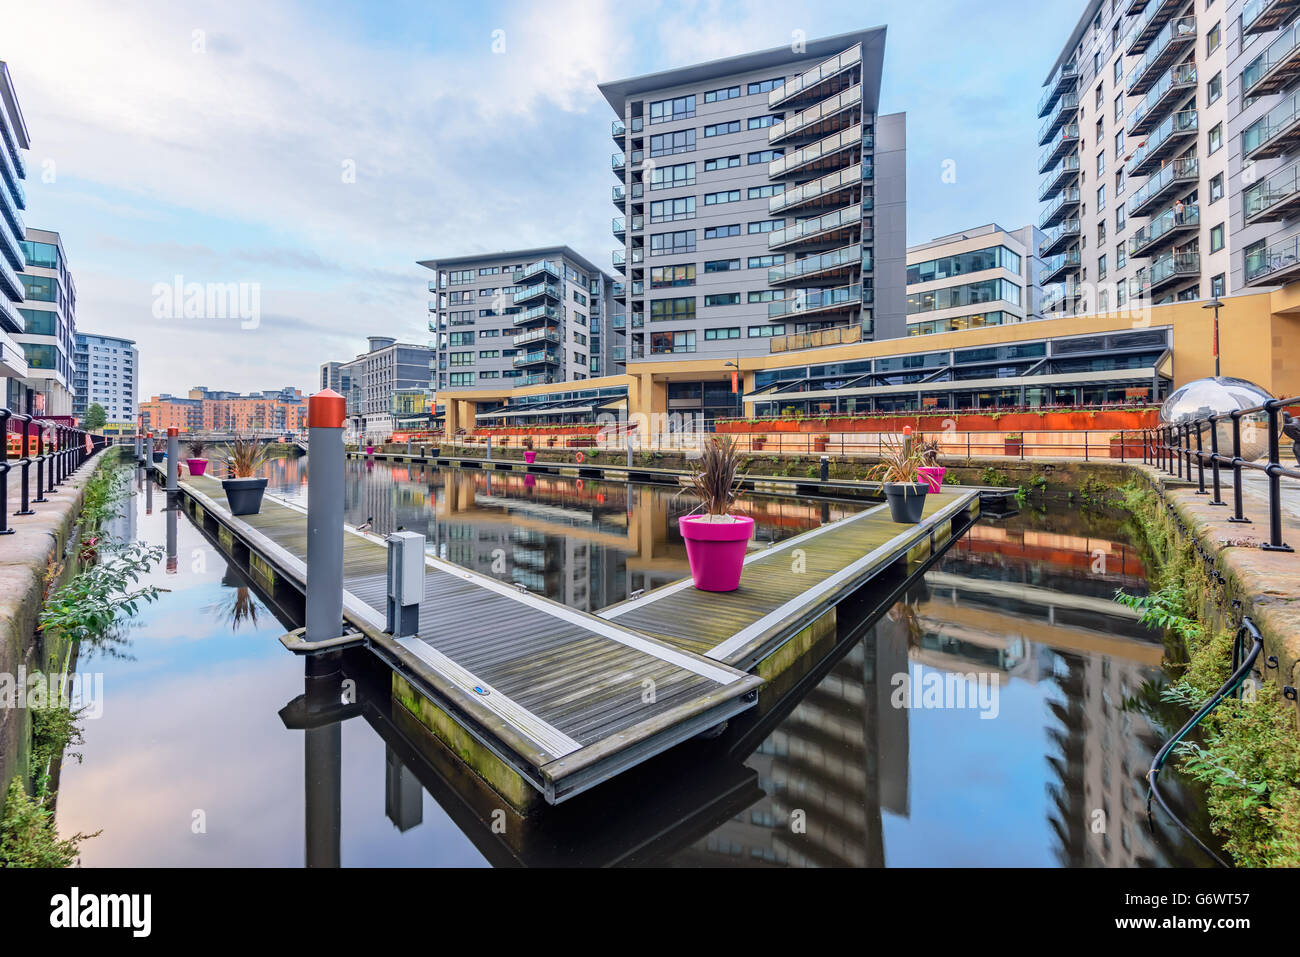 Leeds dock has large residential population in waterside apartments  by the River Aire in central Leeds, West Yorkshire, - Stock Image